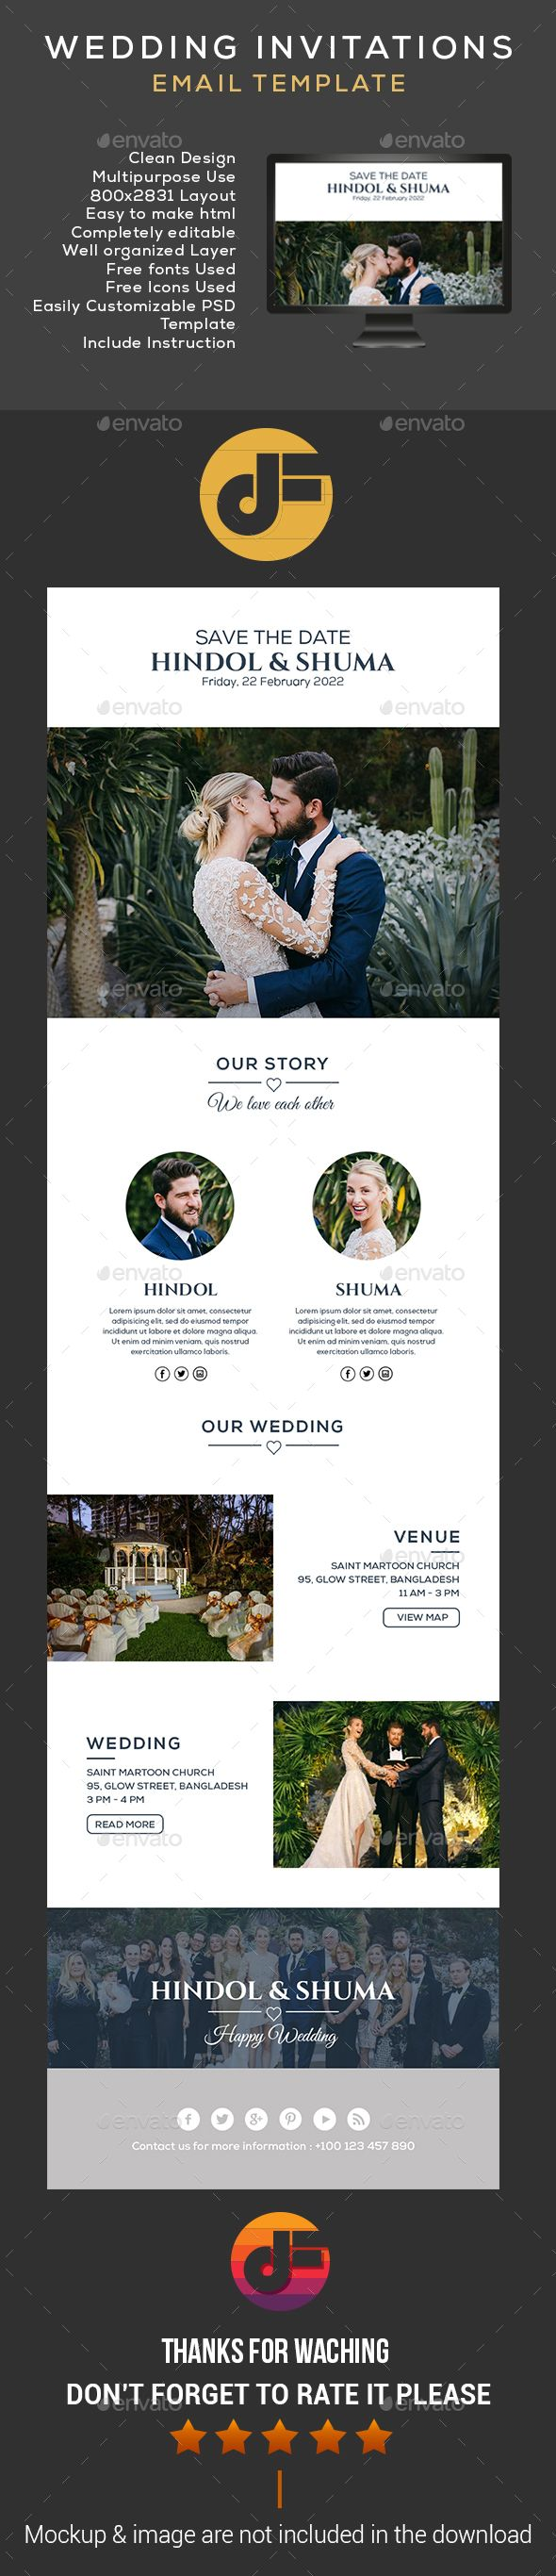 Wedding invitation email template template weddings and wedding invitation email template psd download here httpgraphicriveritemwedding invitation email template 16196531refksioks stopboris Image collections